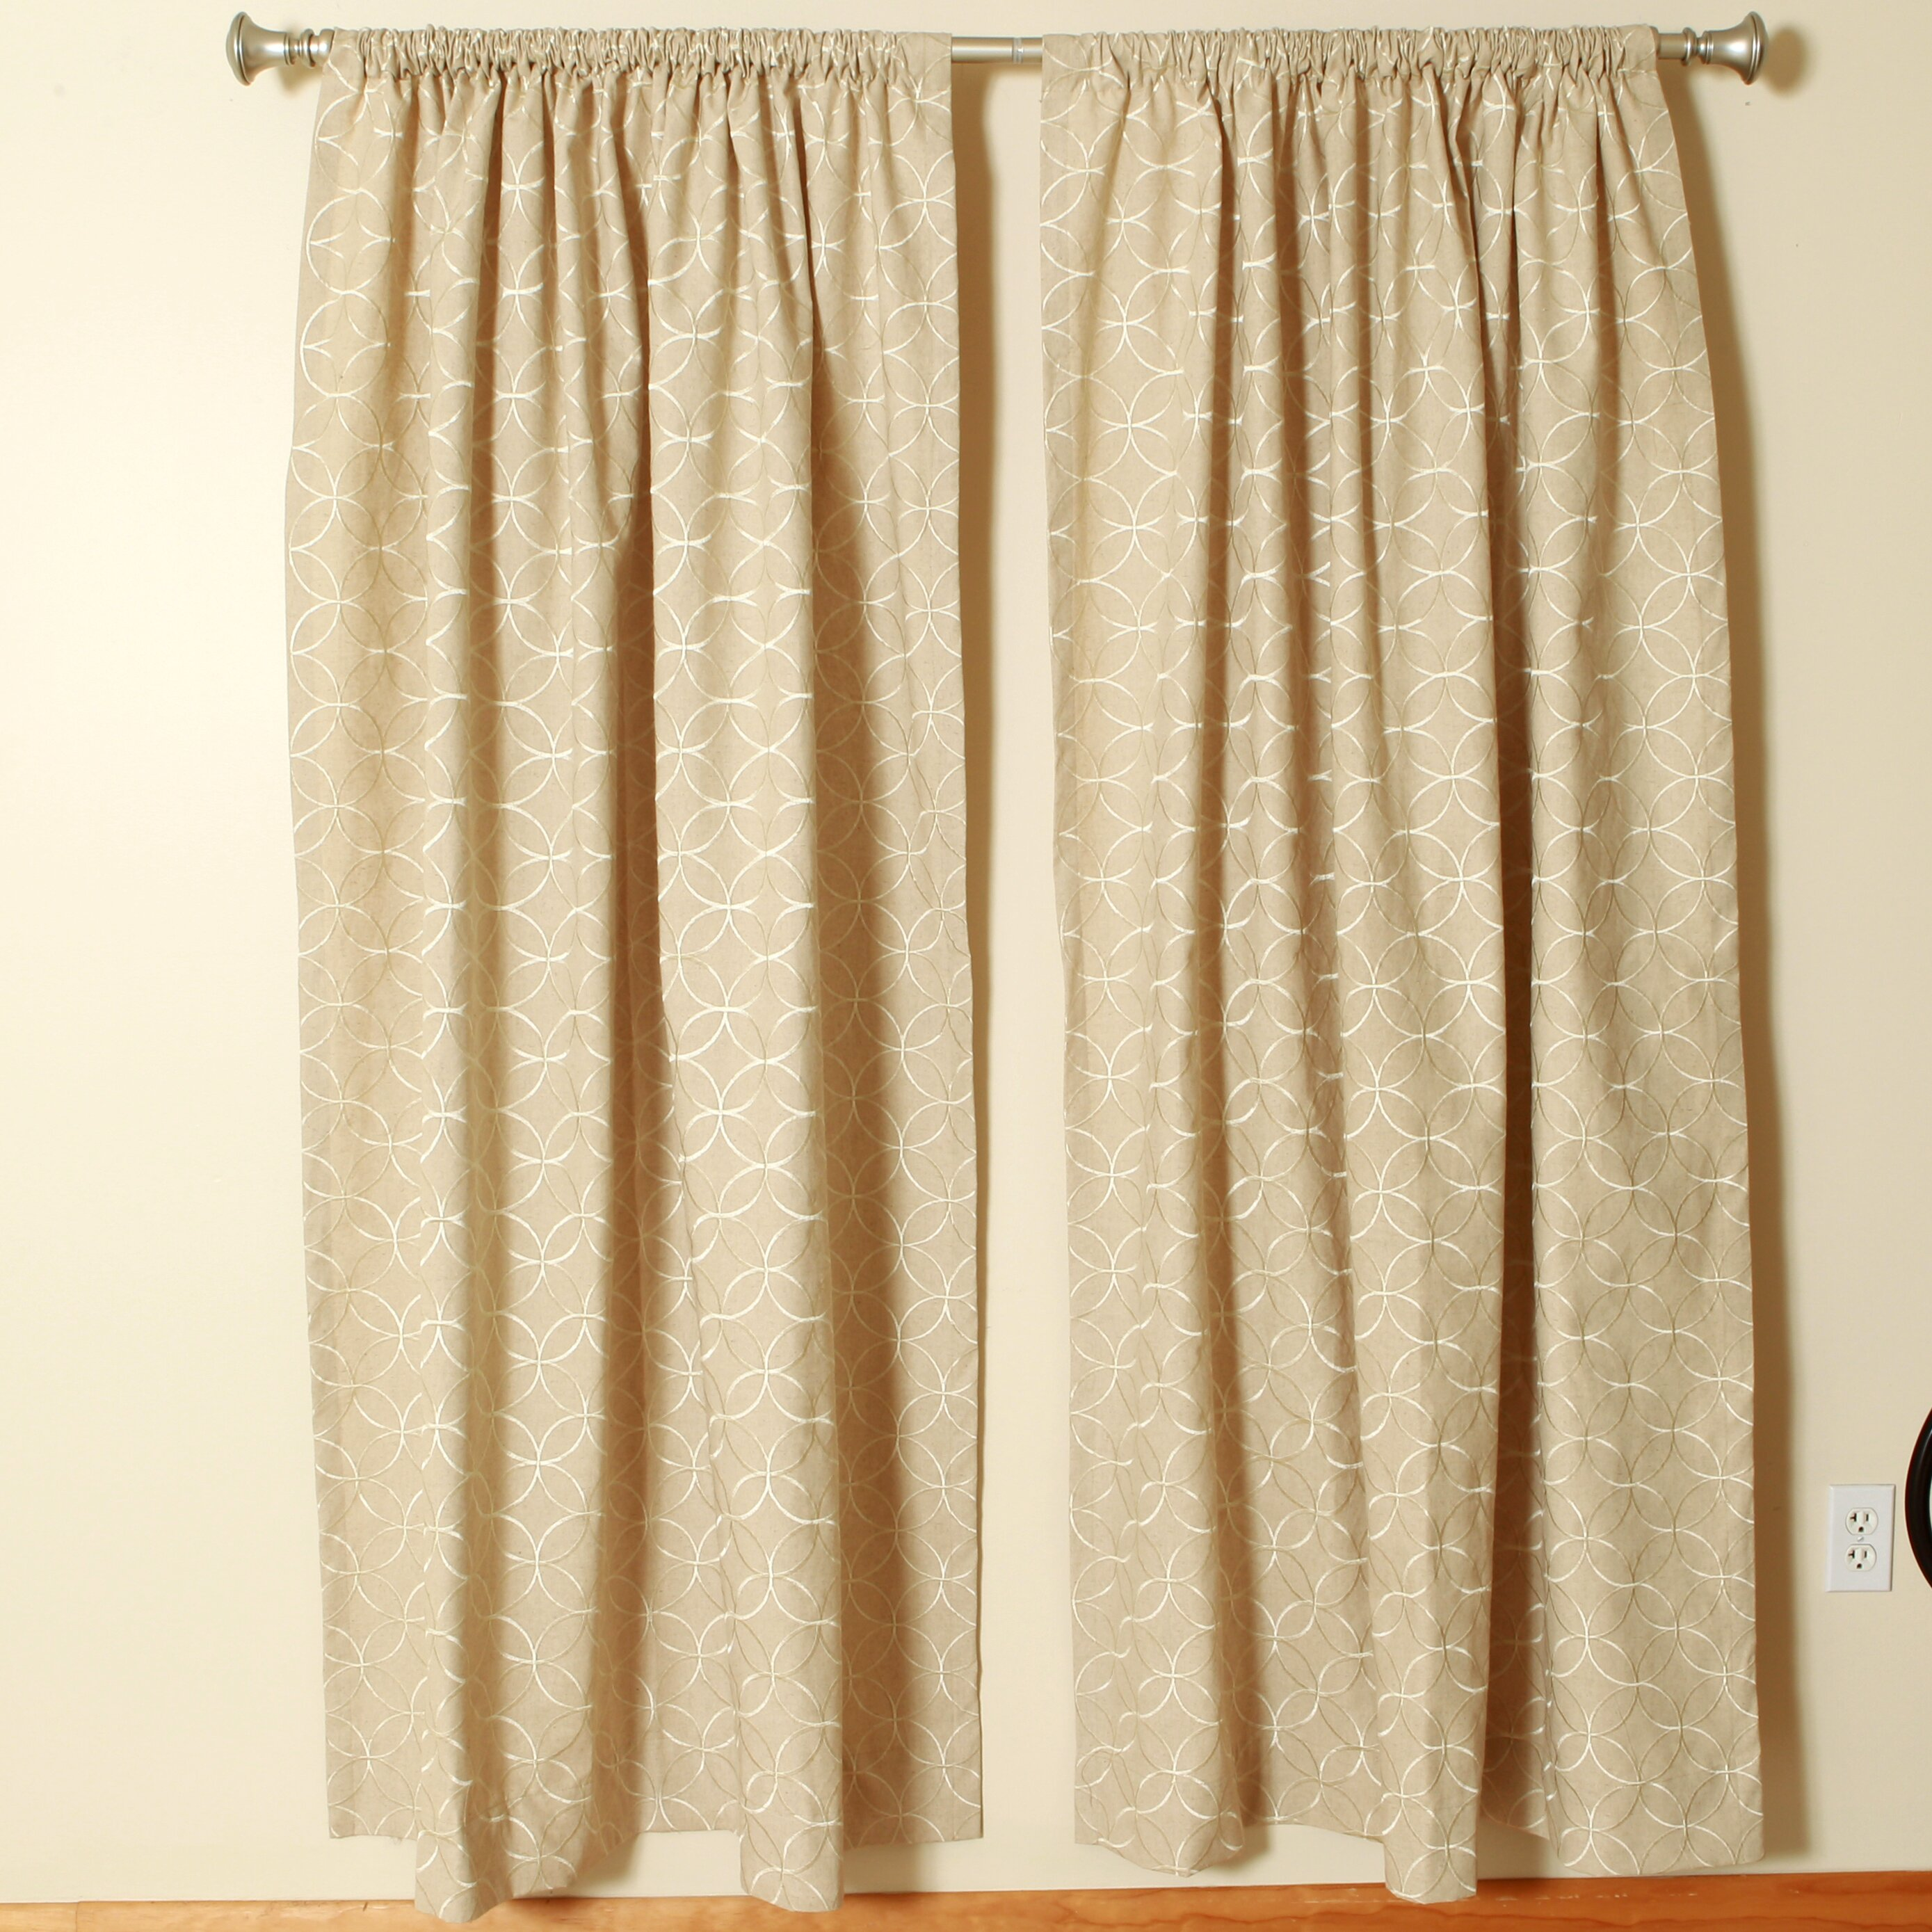 Linen Rod Pocket Curtain Panels by The Pillow Collection